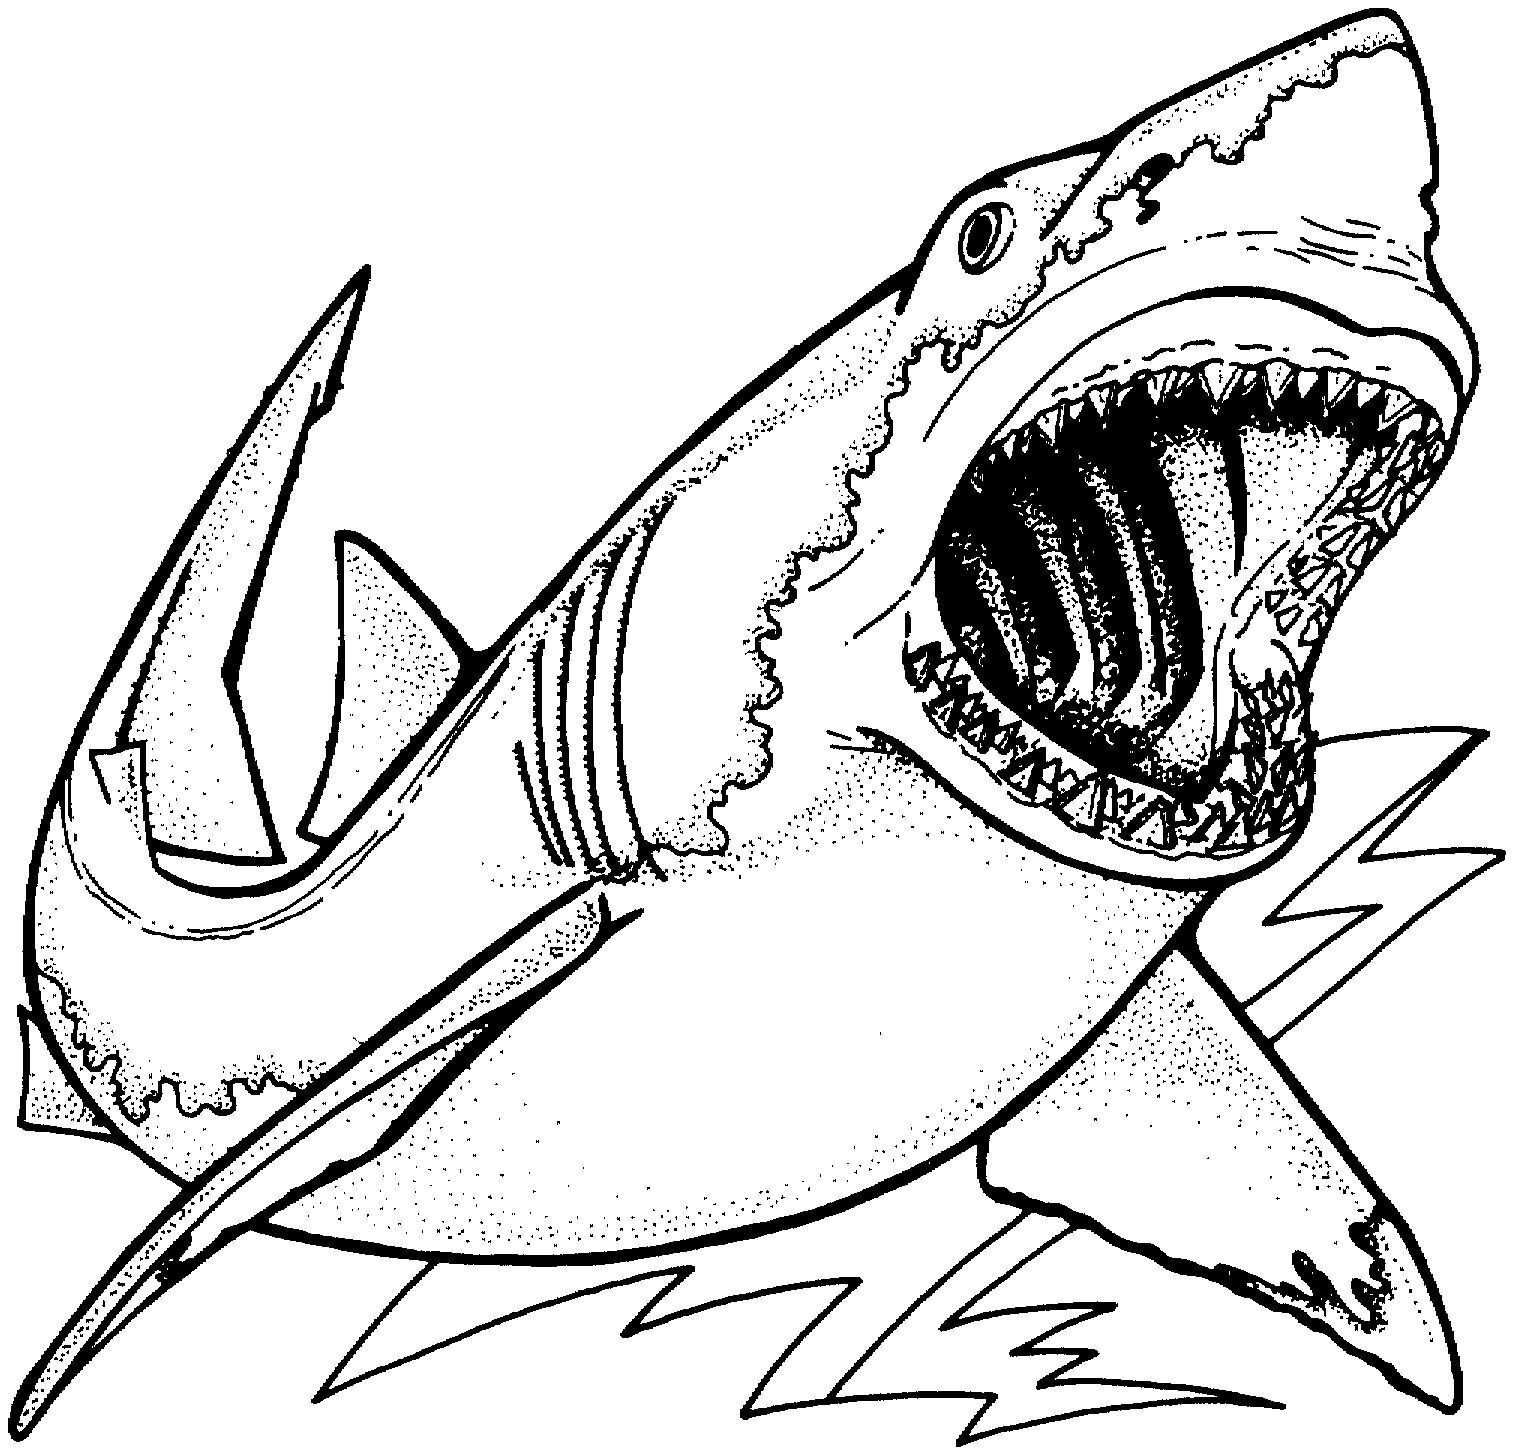 Shark Coloring Pages Printable Unique Luxury Tiger Shark Coloring Page Tintuc247 En 2020 Coloriage Requin Coloriage Livre De Couleur